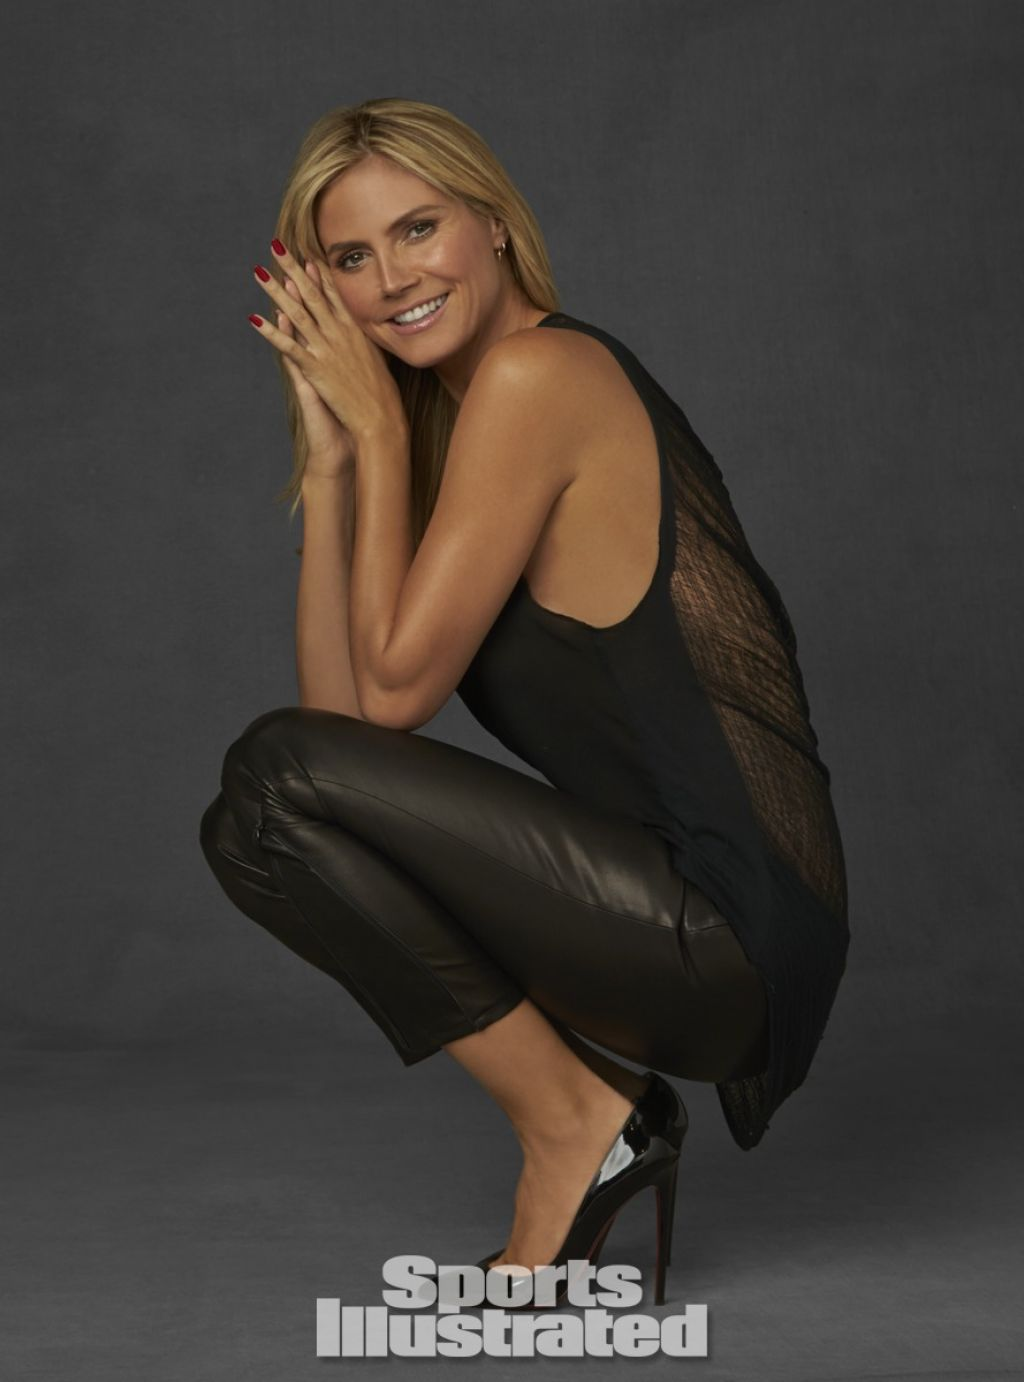 Heidi Klum - Sports Illustrated Swimsuit Legends 2014